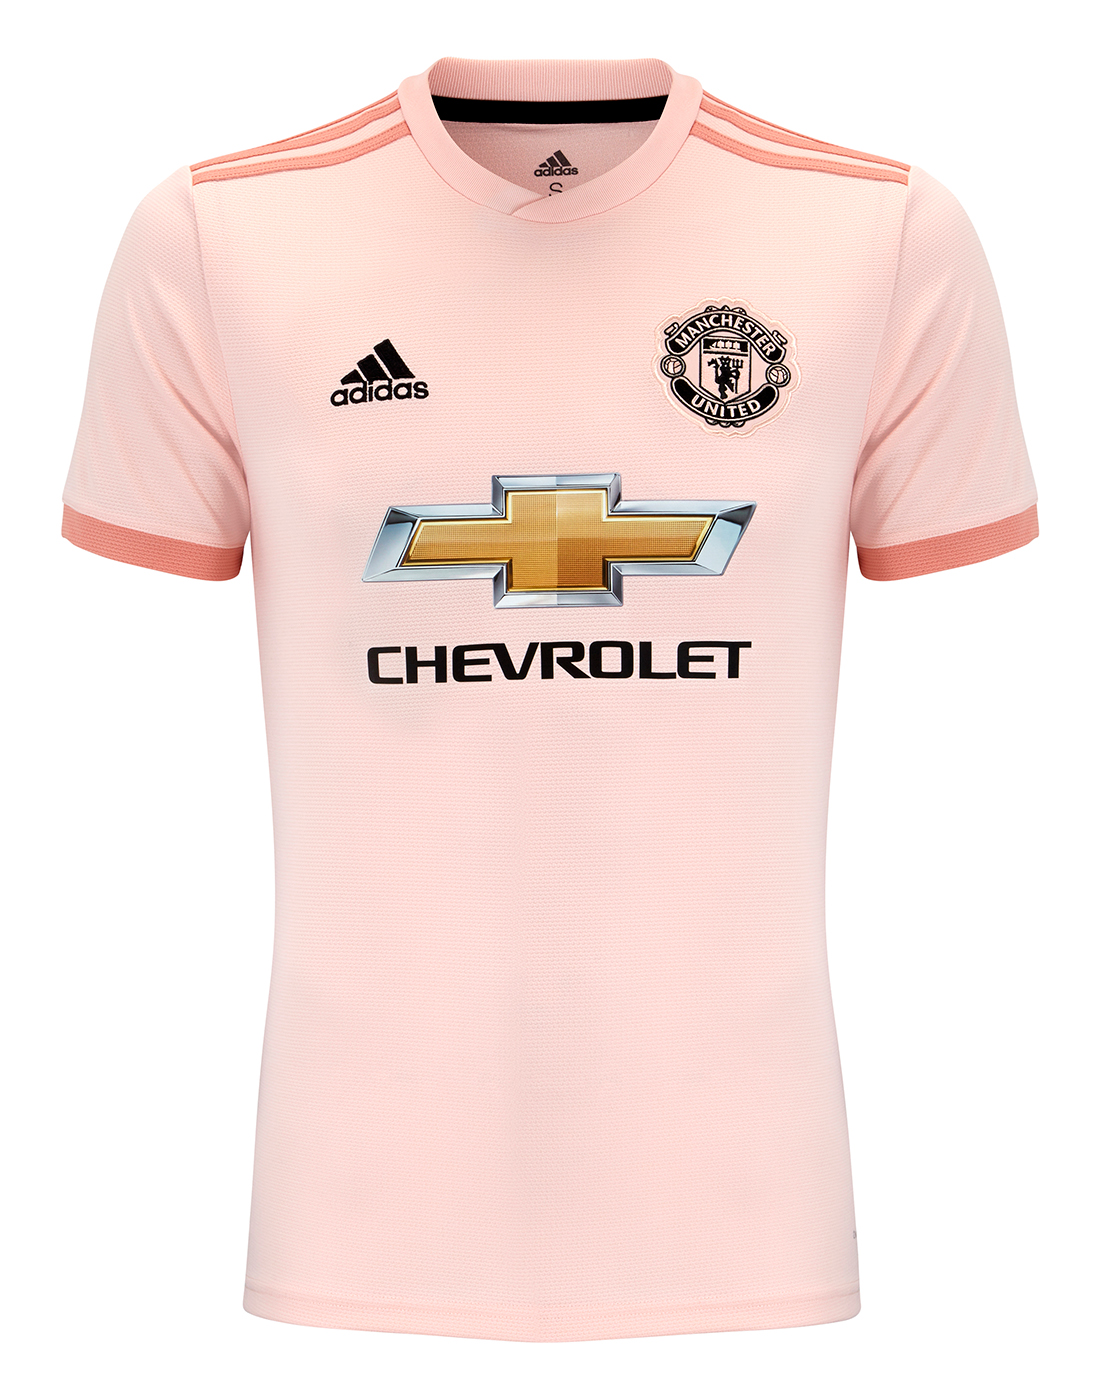 Man United 18 19 Away Jersey Adidas Life Style Sports